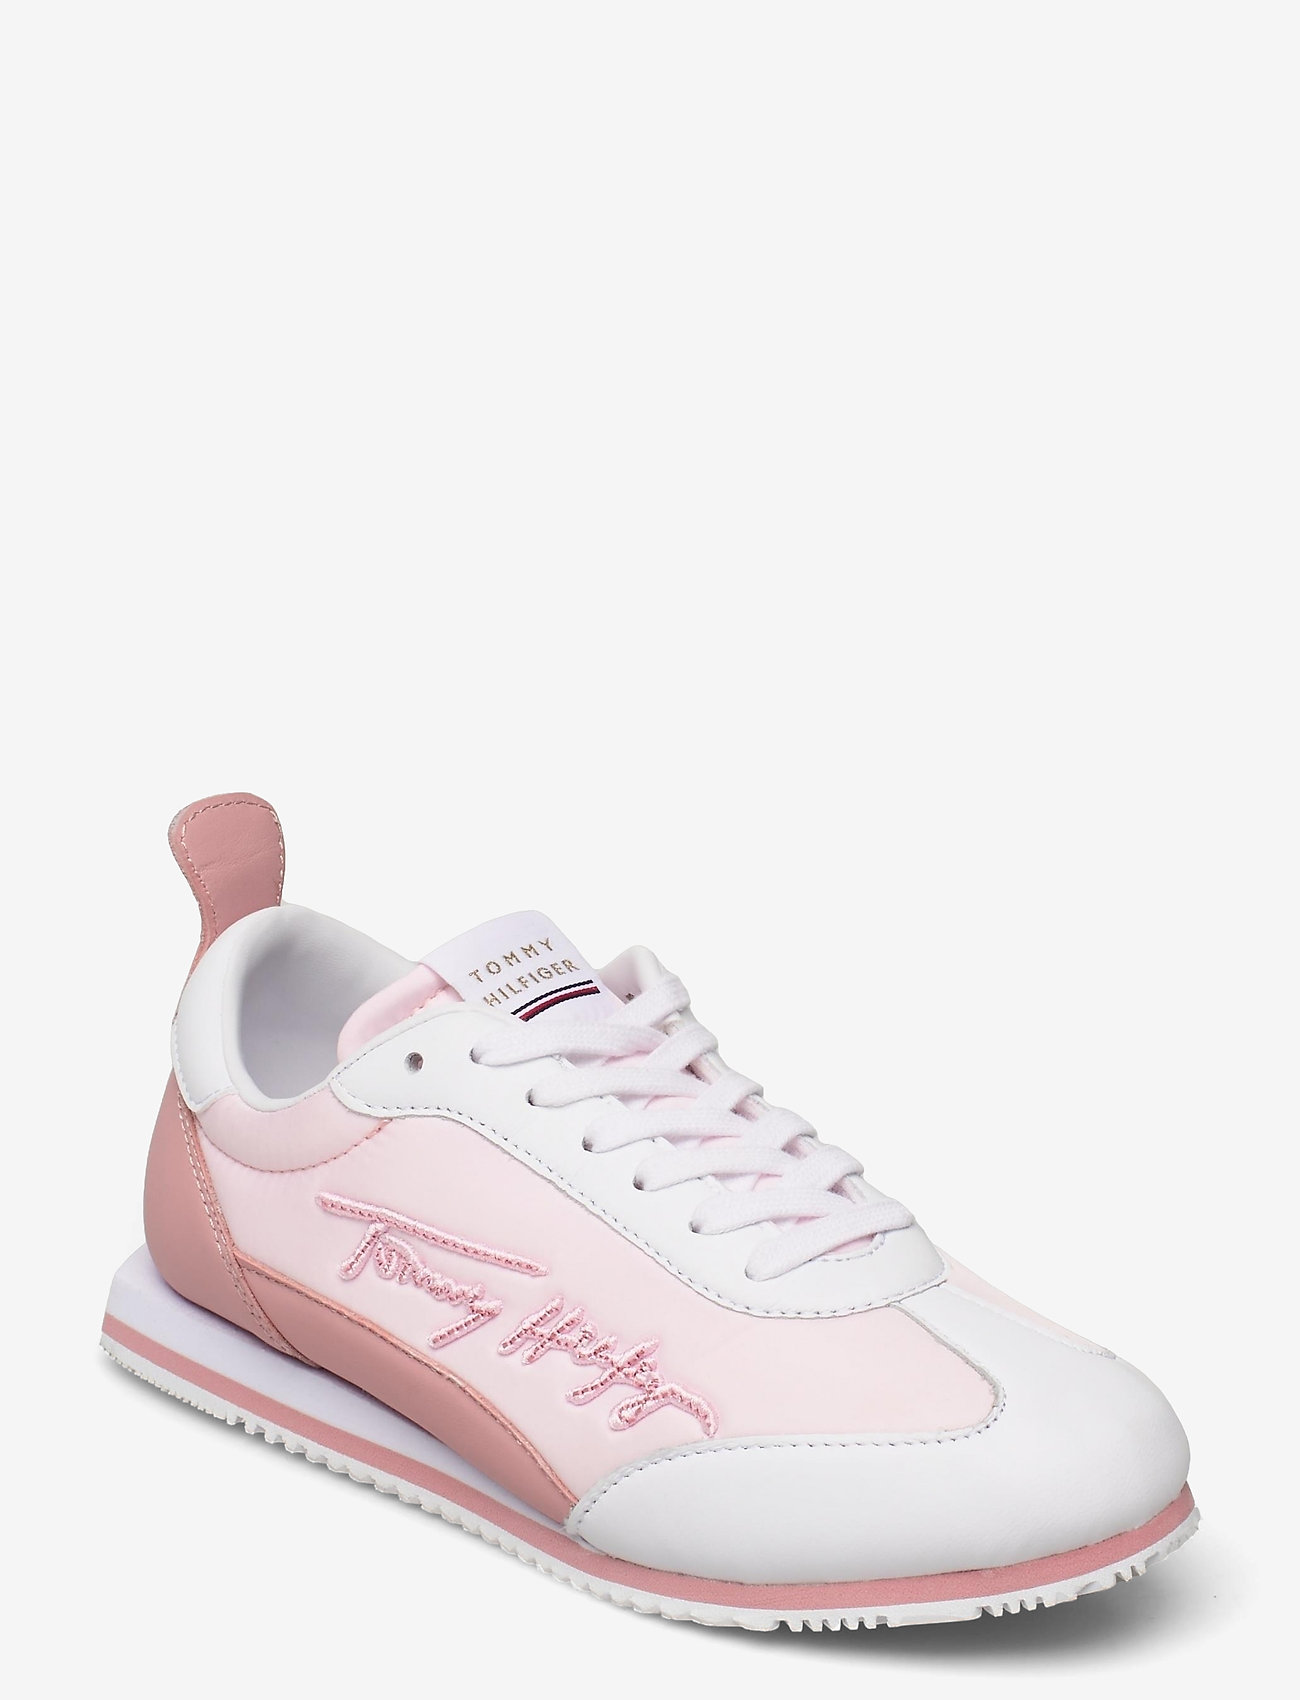 Tommy Hilfiger - SIGNATURE RETRO RUNNER - low top sneakers - light pink - 0